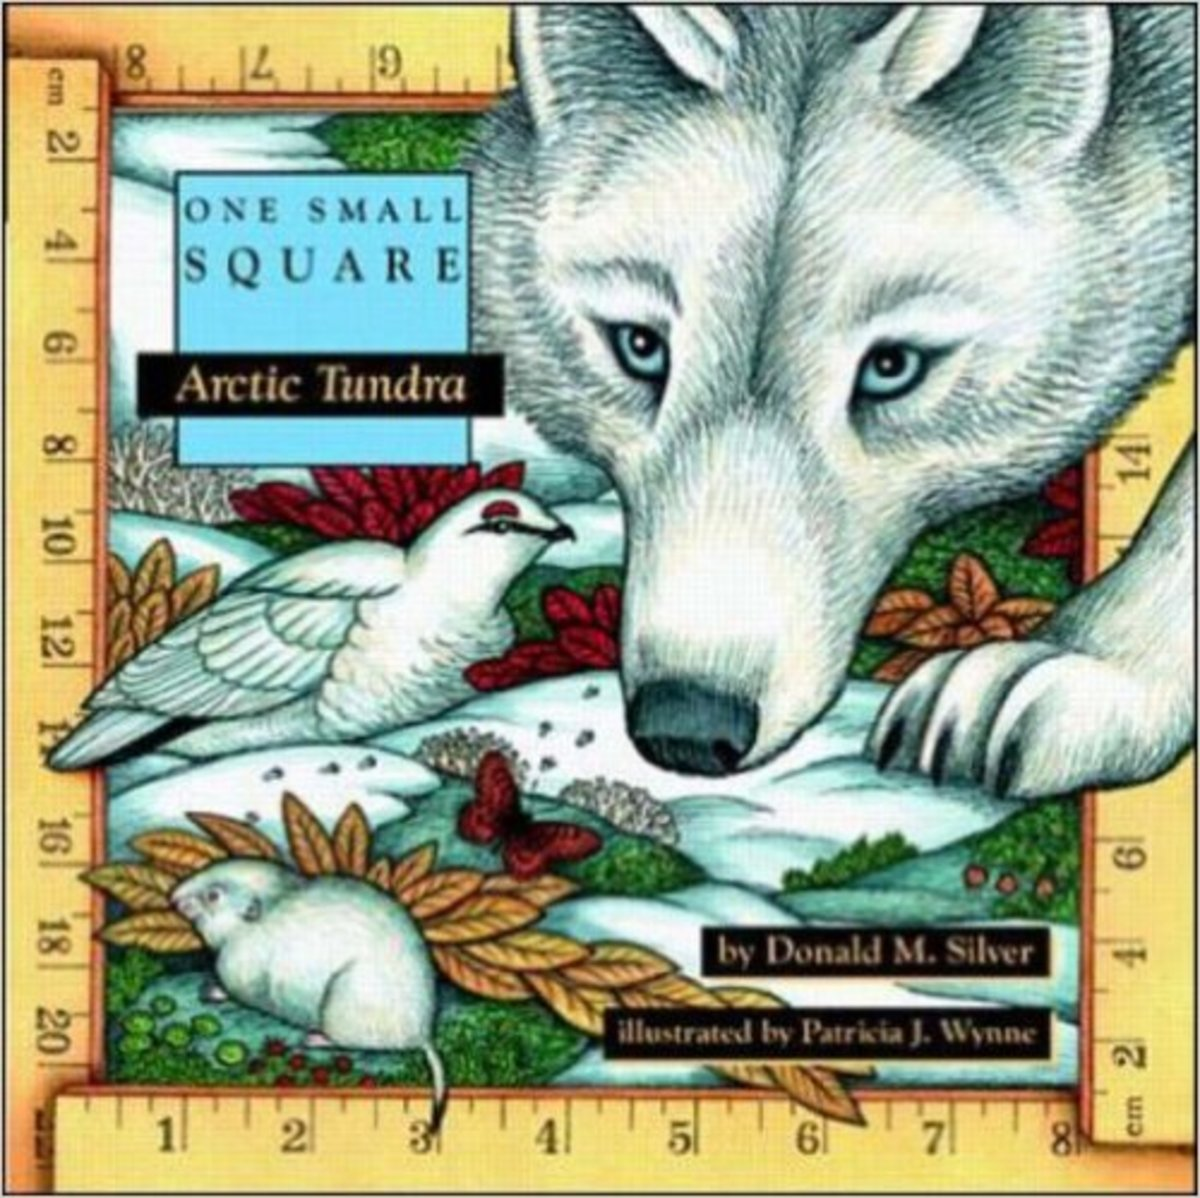 Arctic Tundra by Donald Silver - Images  are from amazon.com.